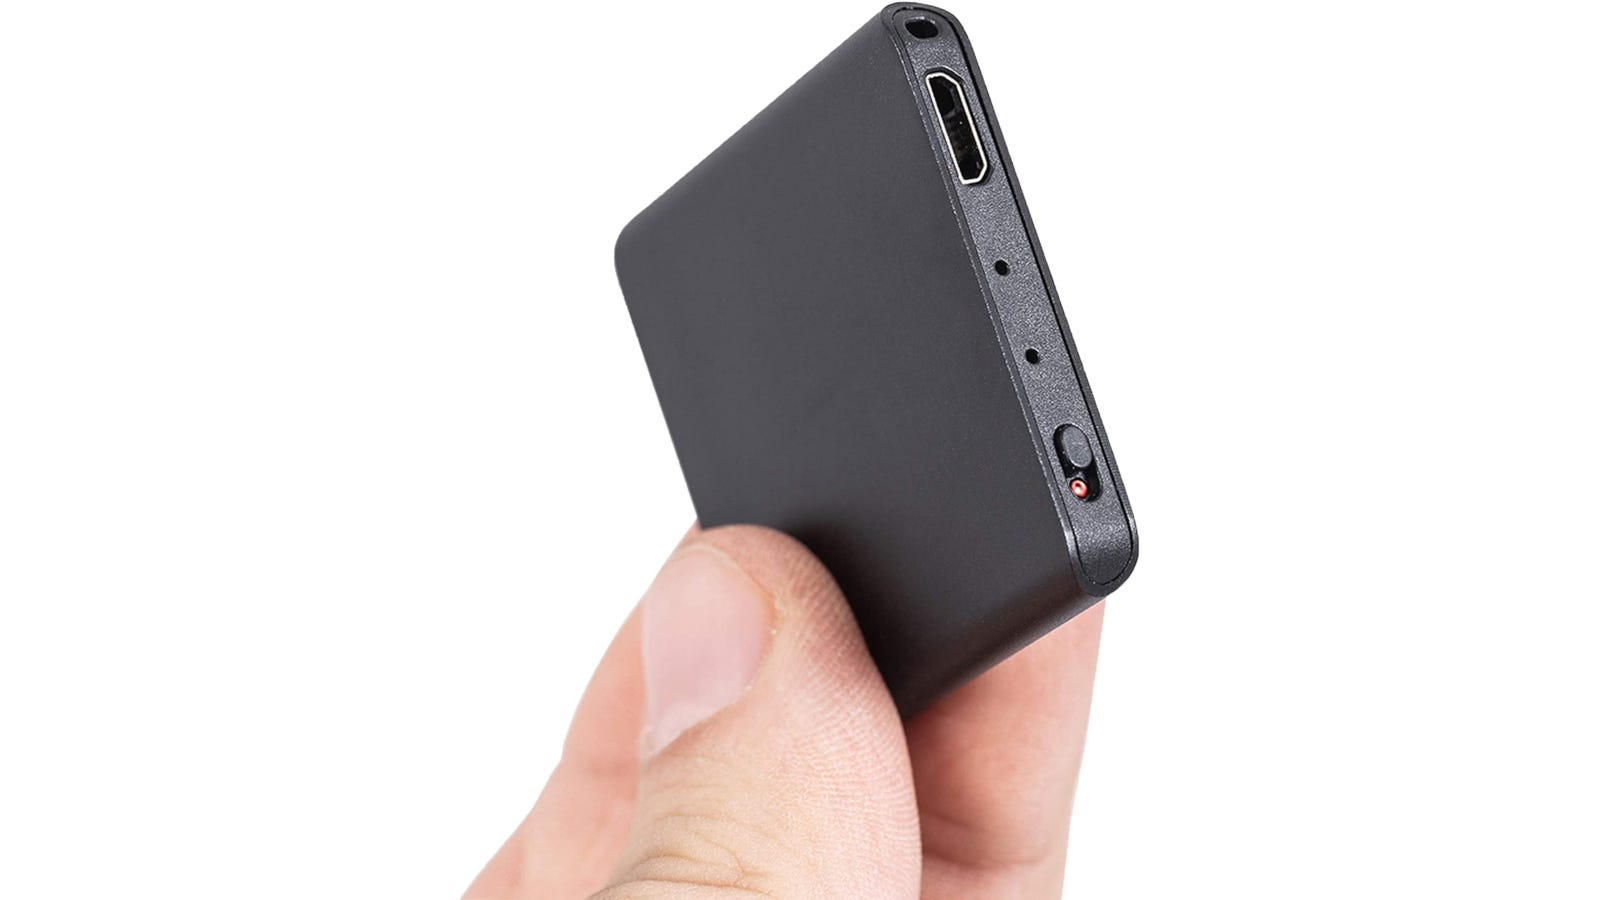 Ultra thin and compact tile-shaped voice recorder with voice activation sensor